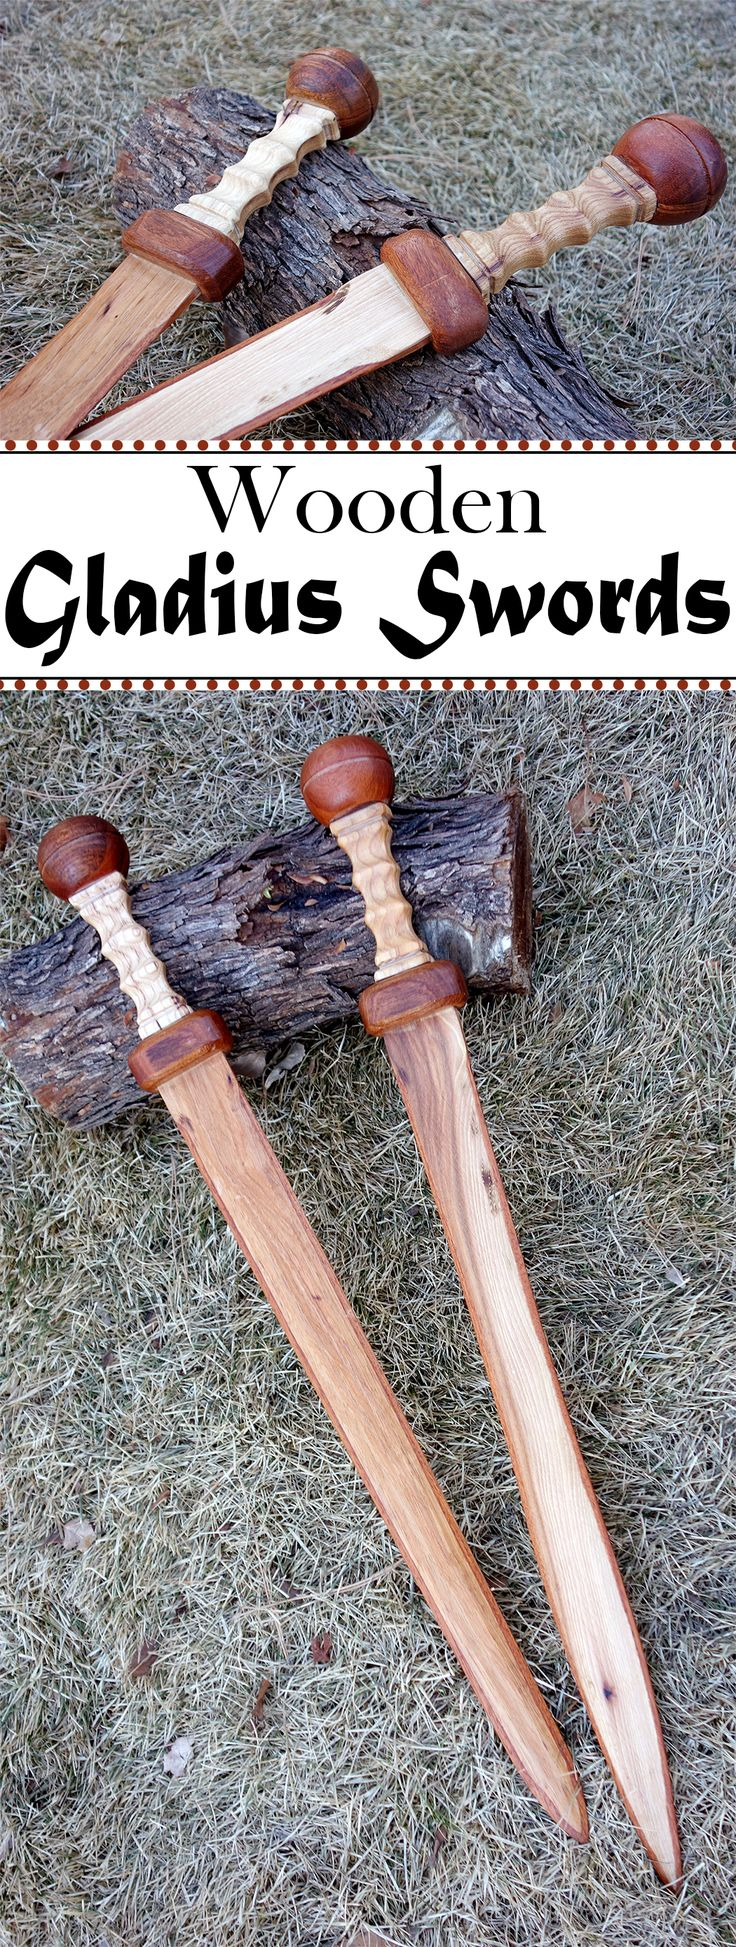 These wooden swords are great as props.